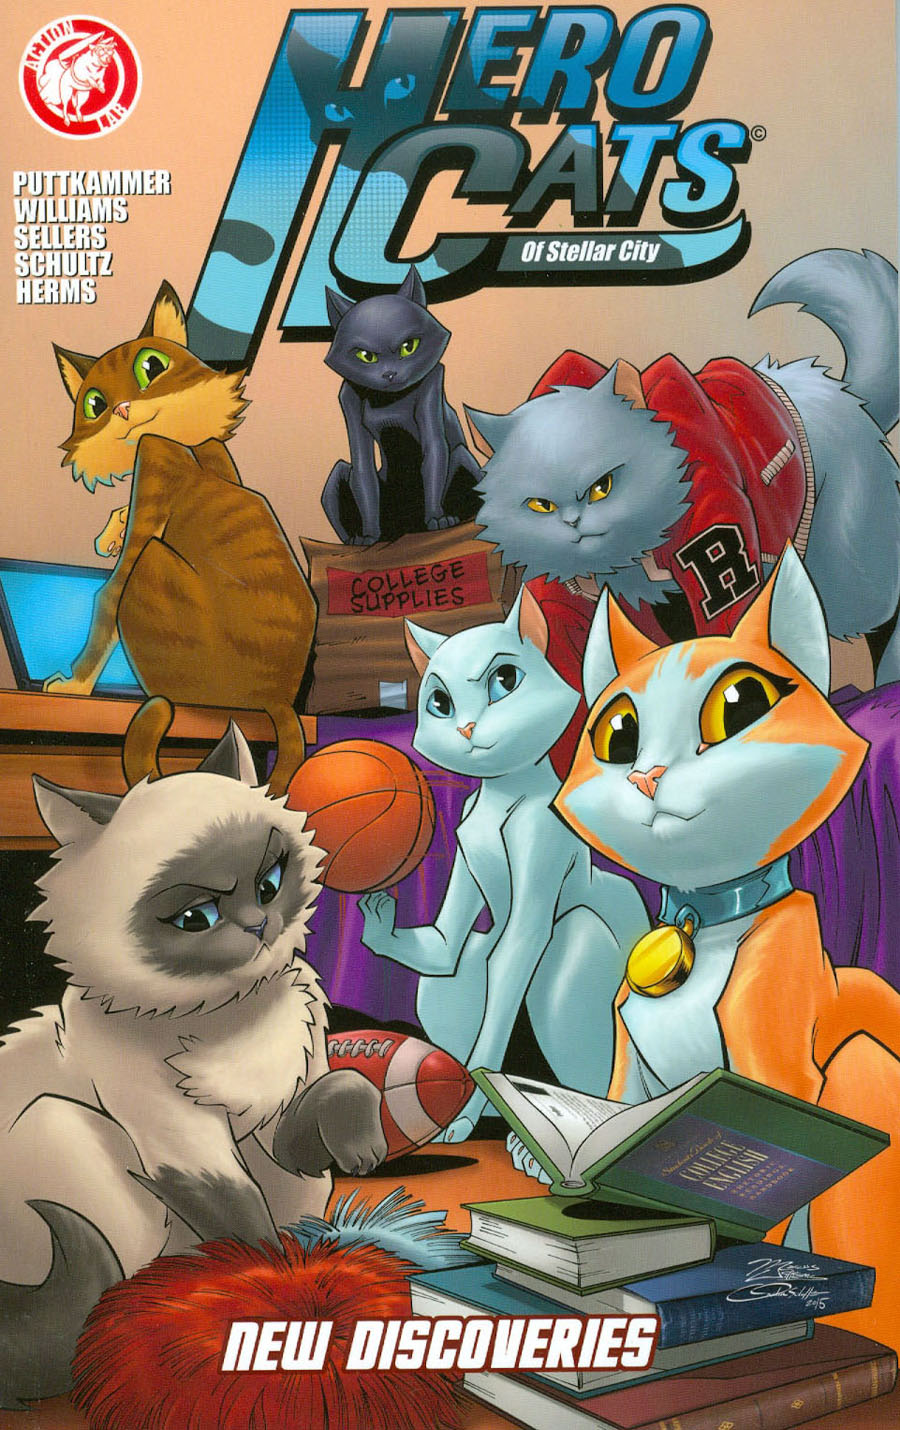 Hero Cats Of Stellar City Vol 2 New Discoveries TP